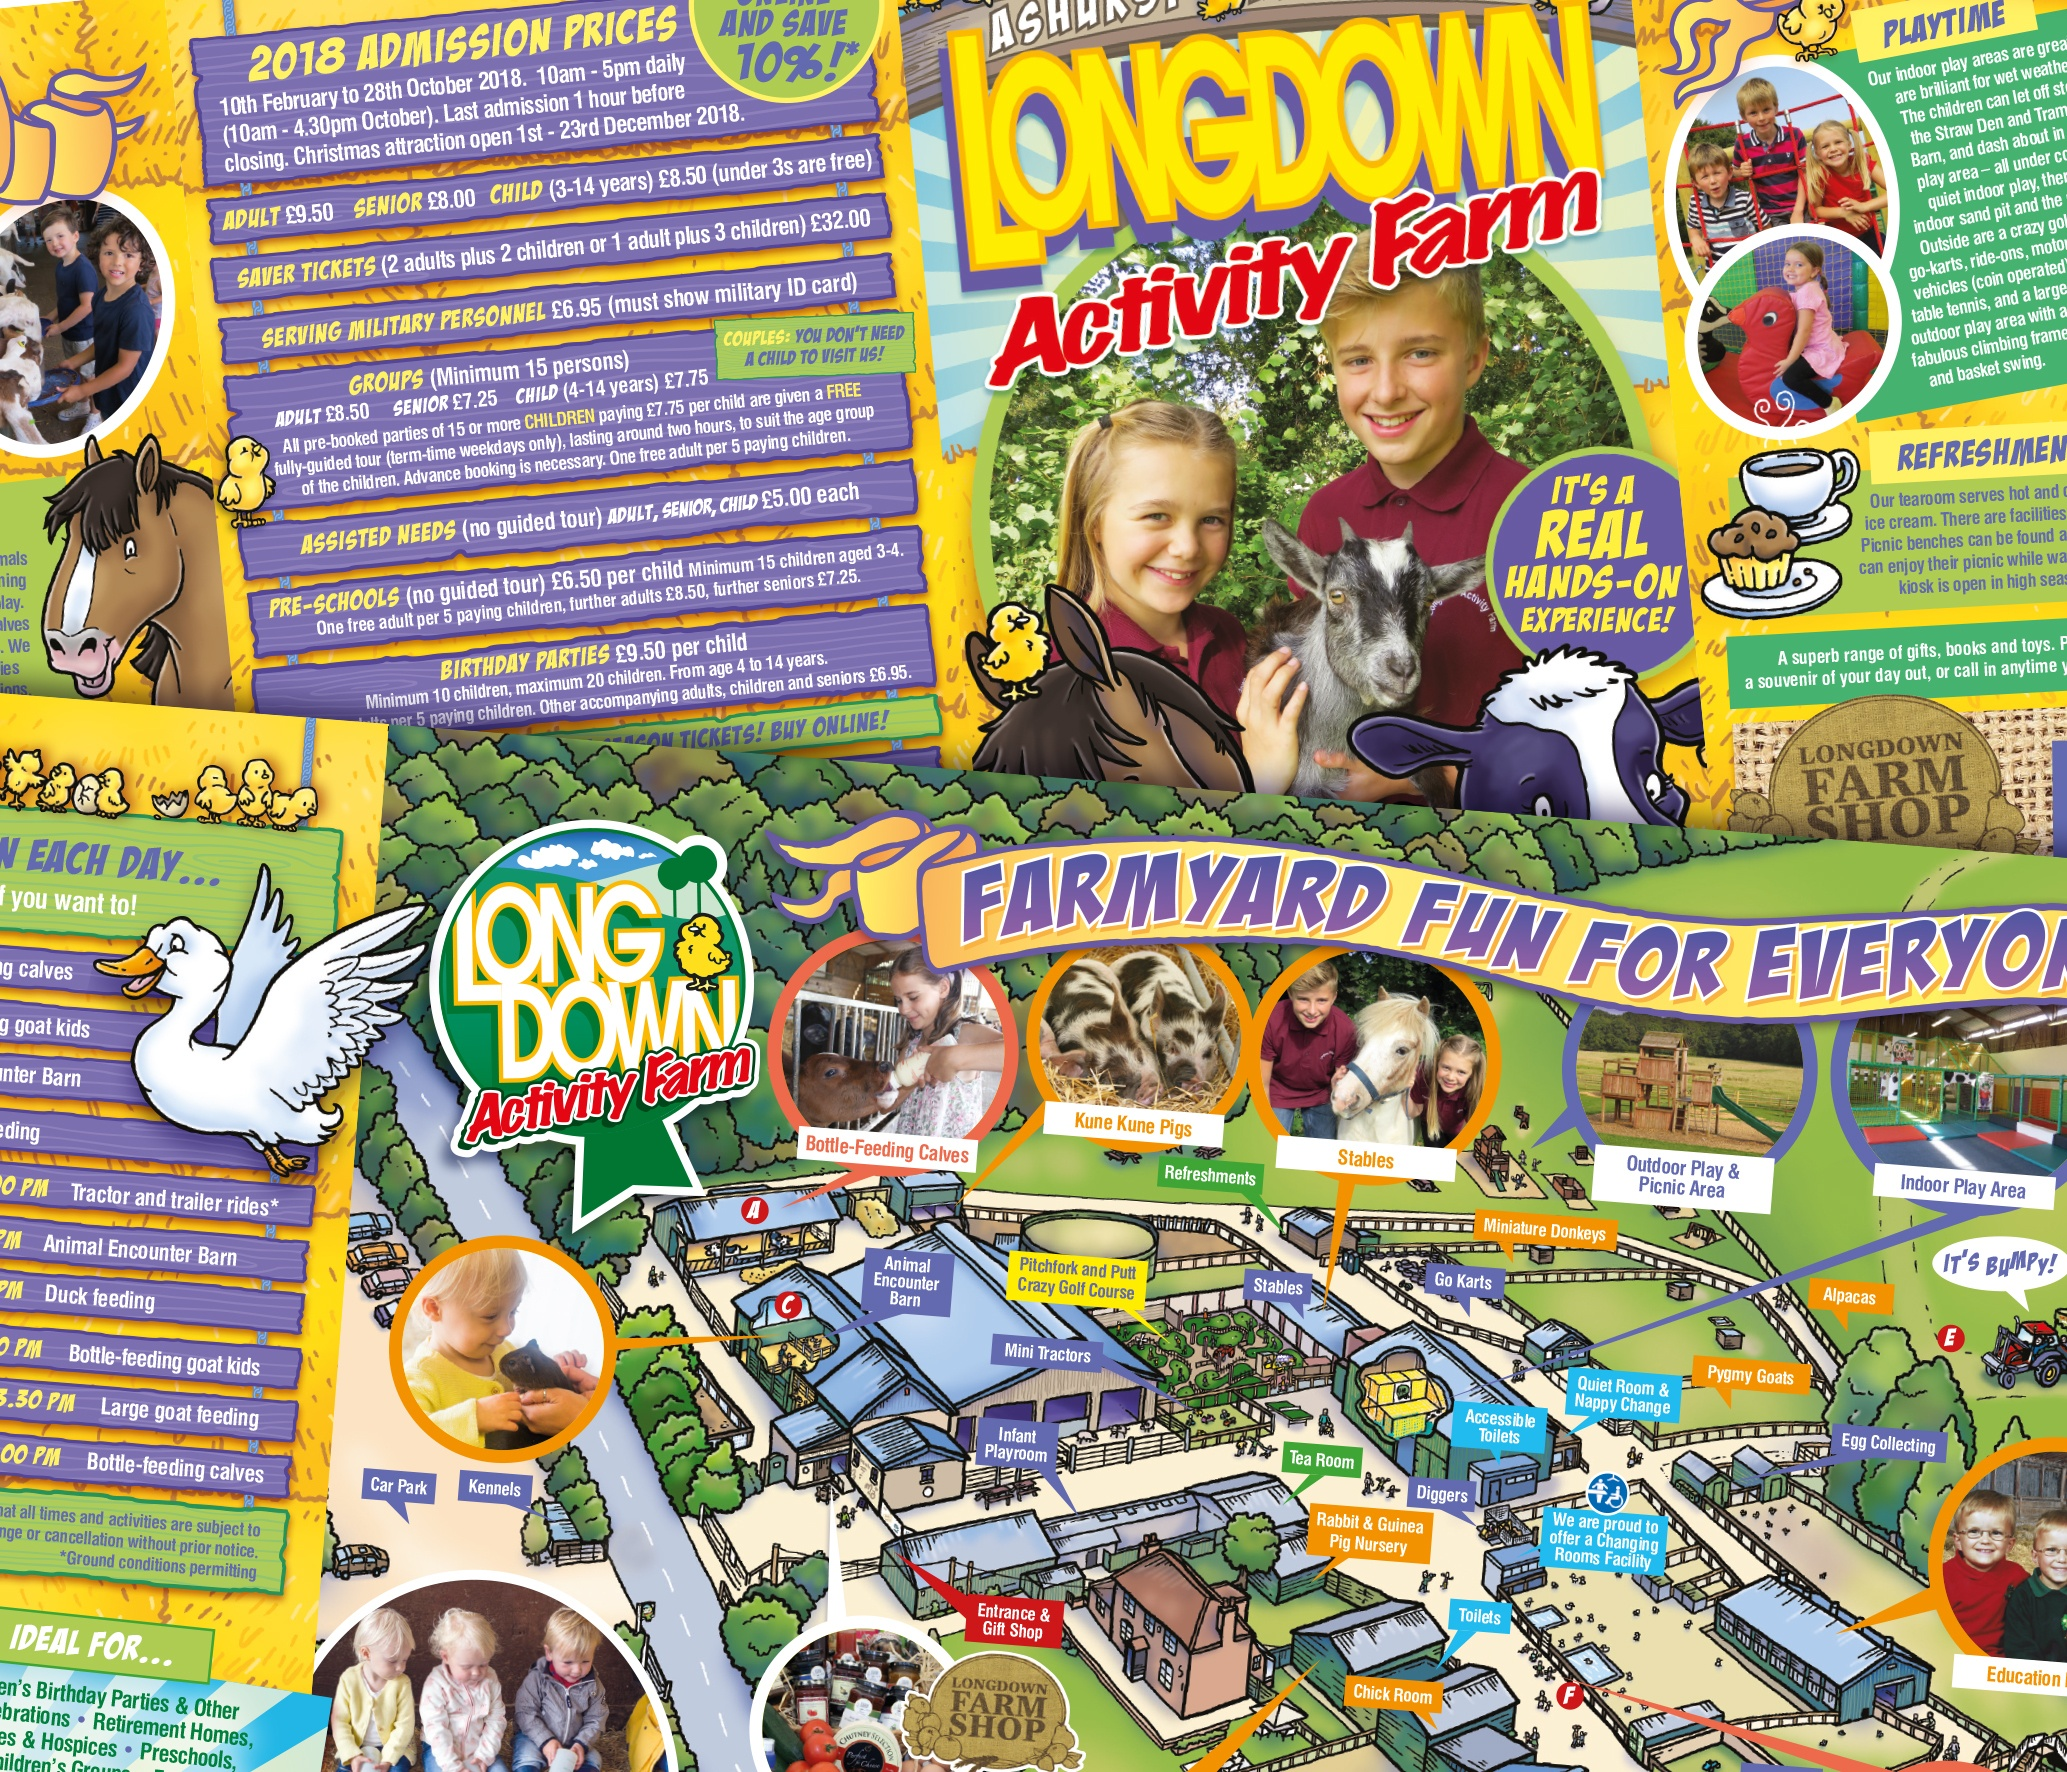 Ceratopia Visitor Attraction Leaflet